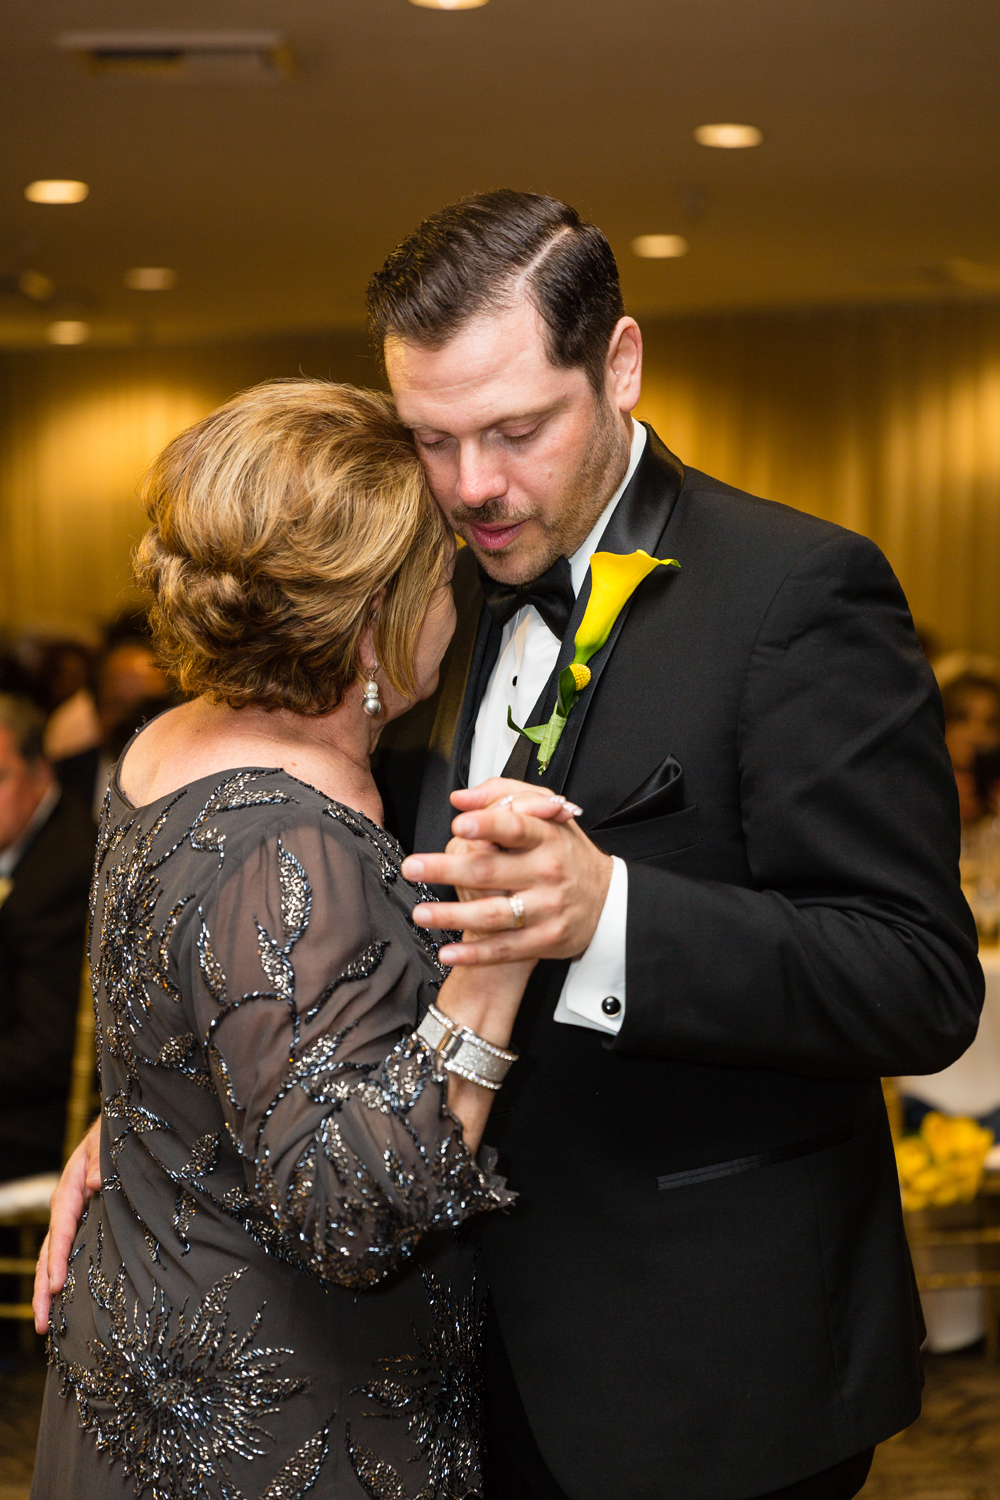 46f58-lively-navy-yellow-harbor-wedding-mother-son-dance-sweet-tender-moment.jpg